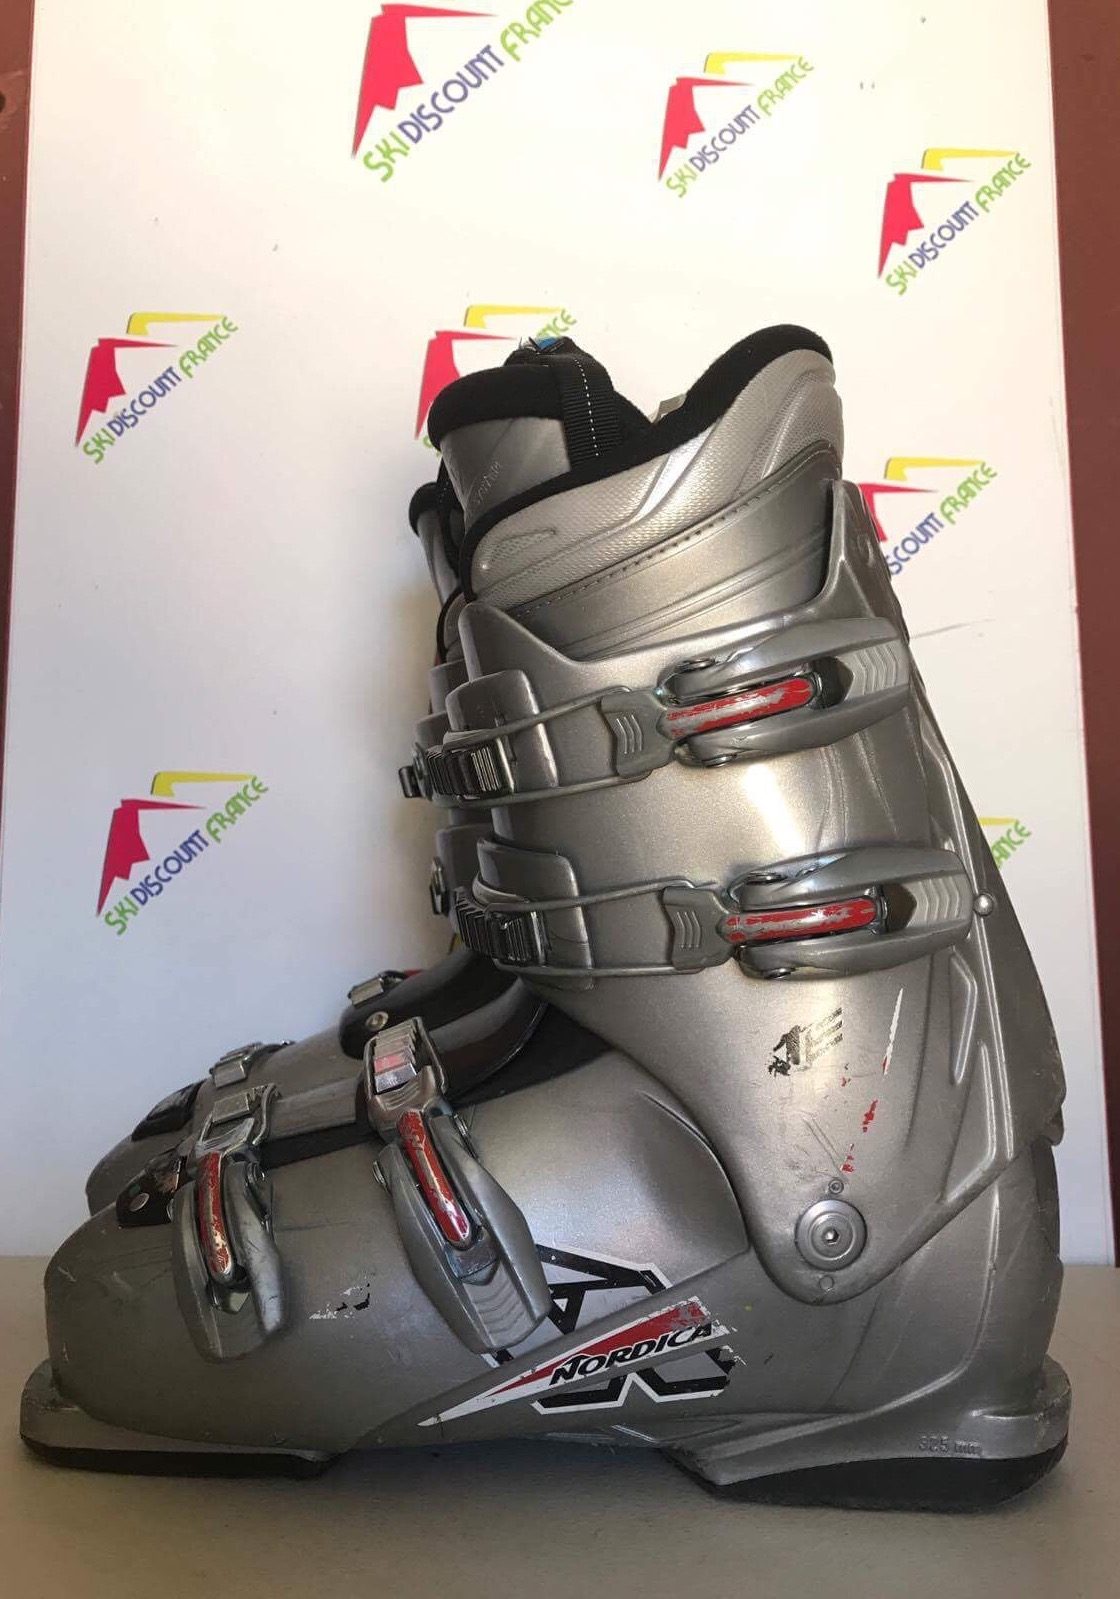 Chaussure de ski Occasion Nordica Easy One S Adulte